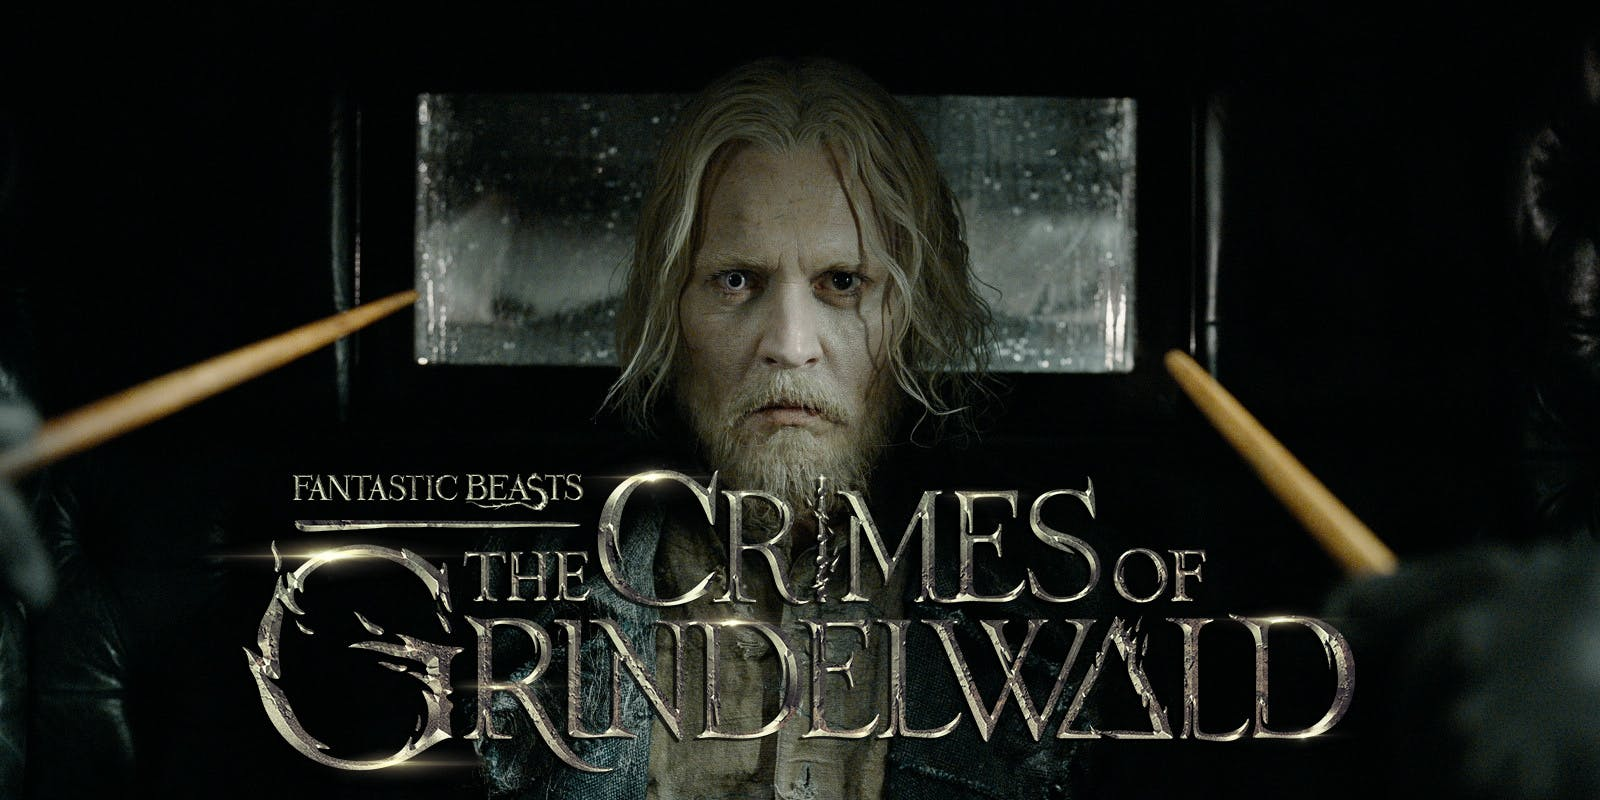 Gellert Grindelwald facts